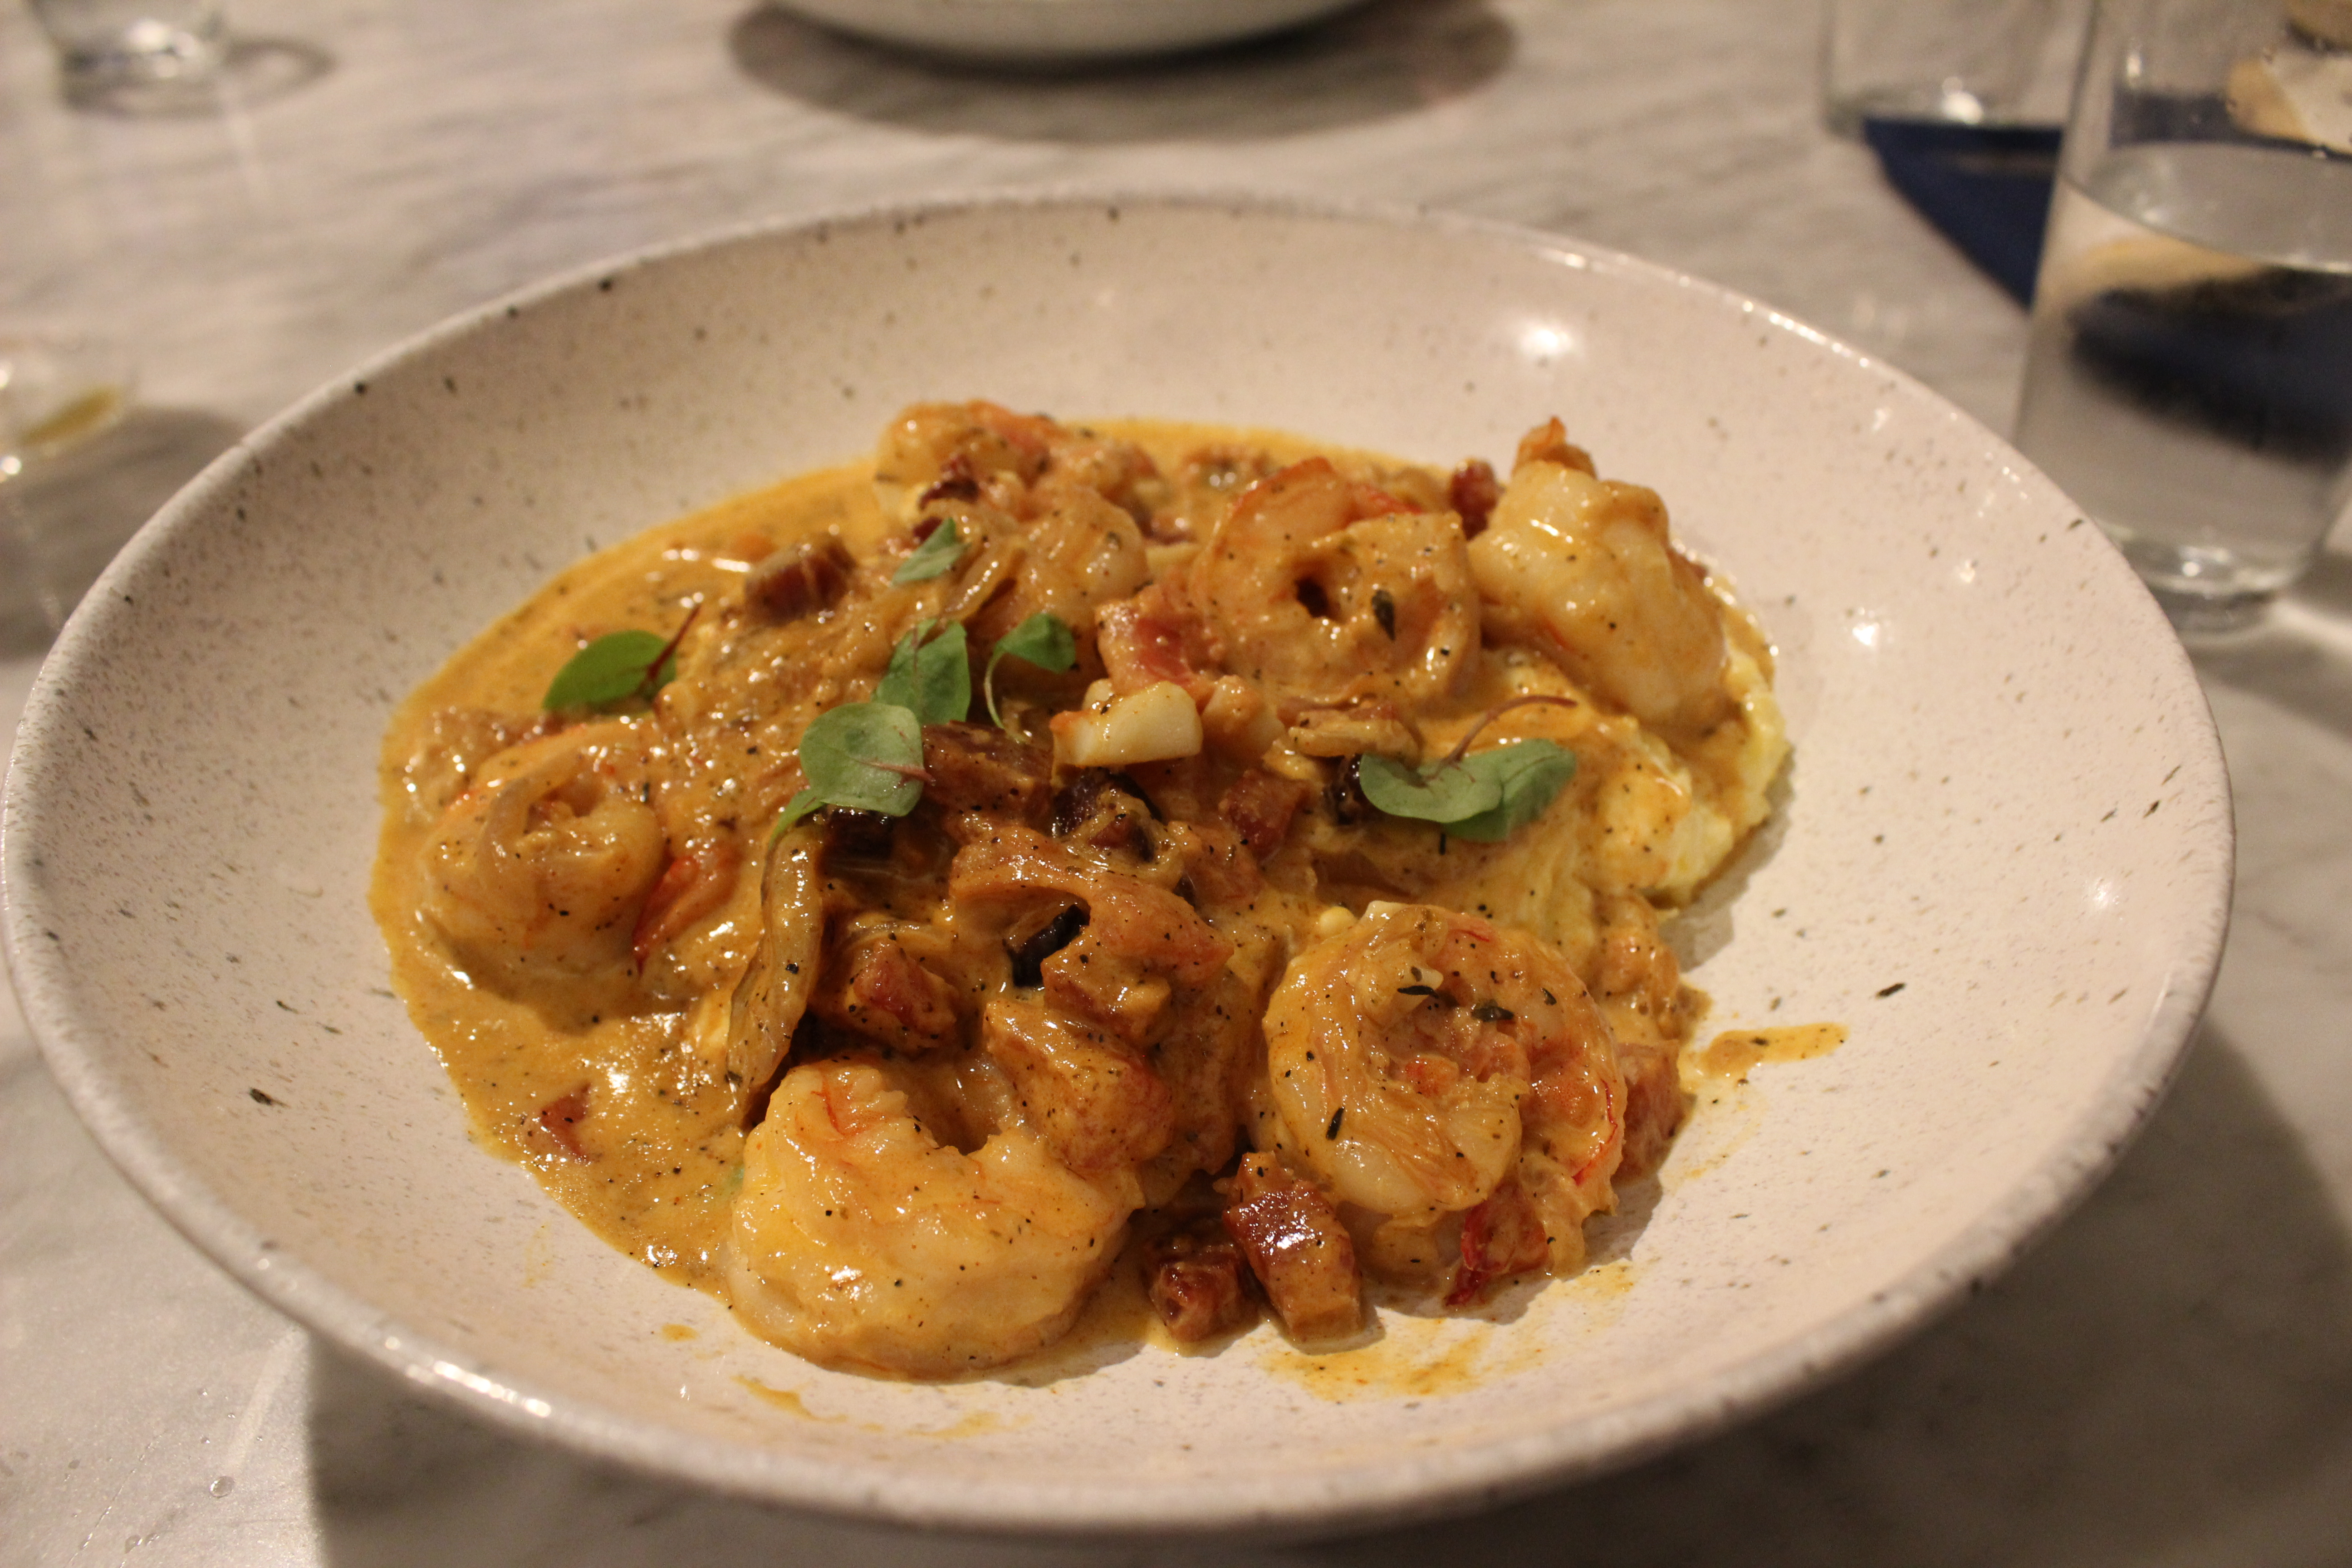 Life-changing shrimp and grits.